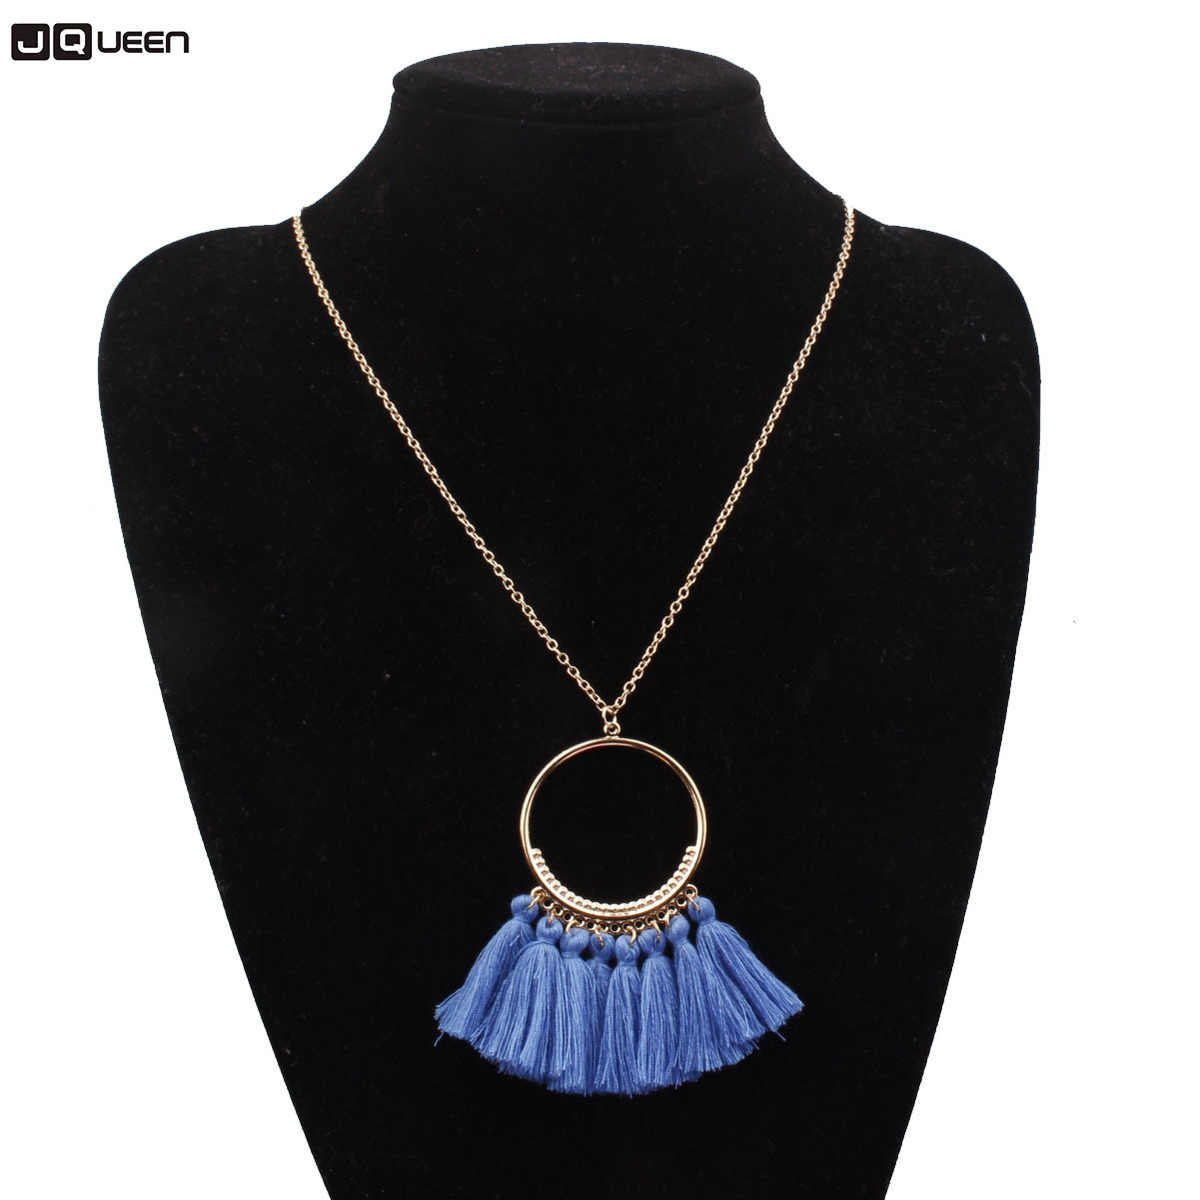 Originality Tassels Pendant Necklace Woman Fashion Ornaments Accessories Long Chain Bohemia Gold Necklace Female Jewelry